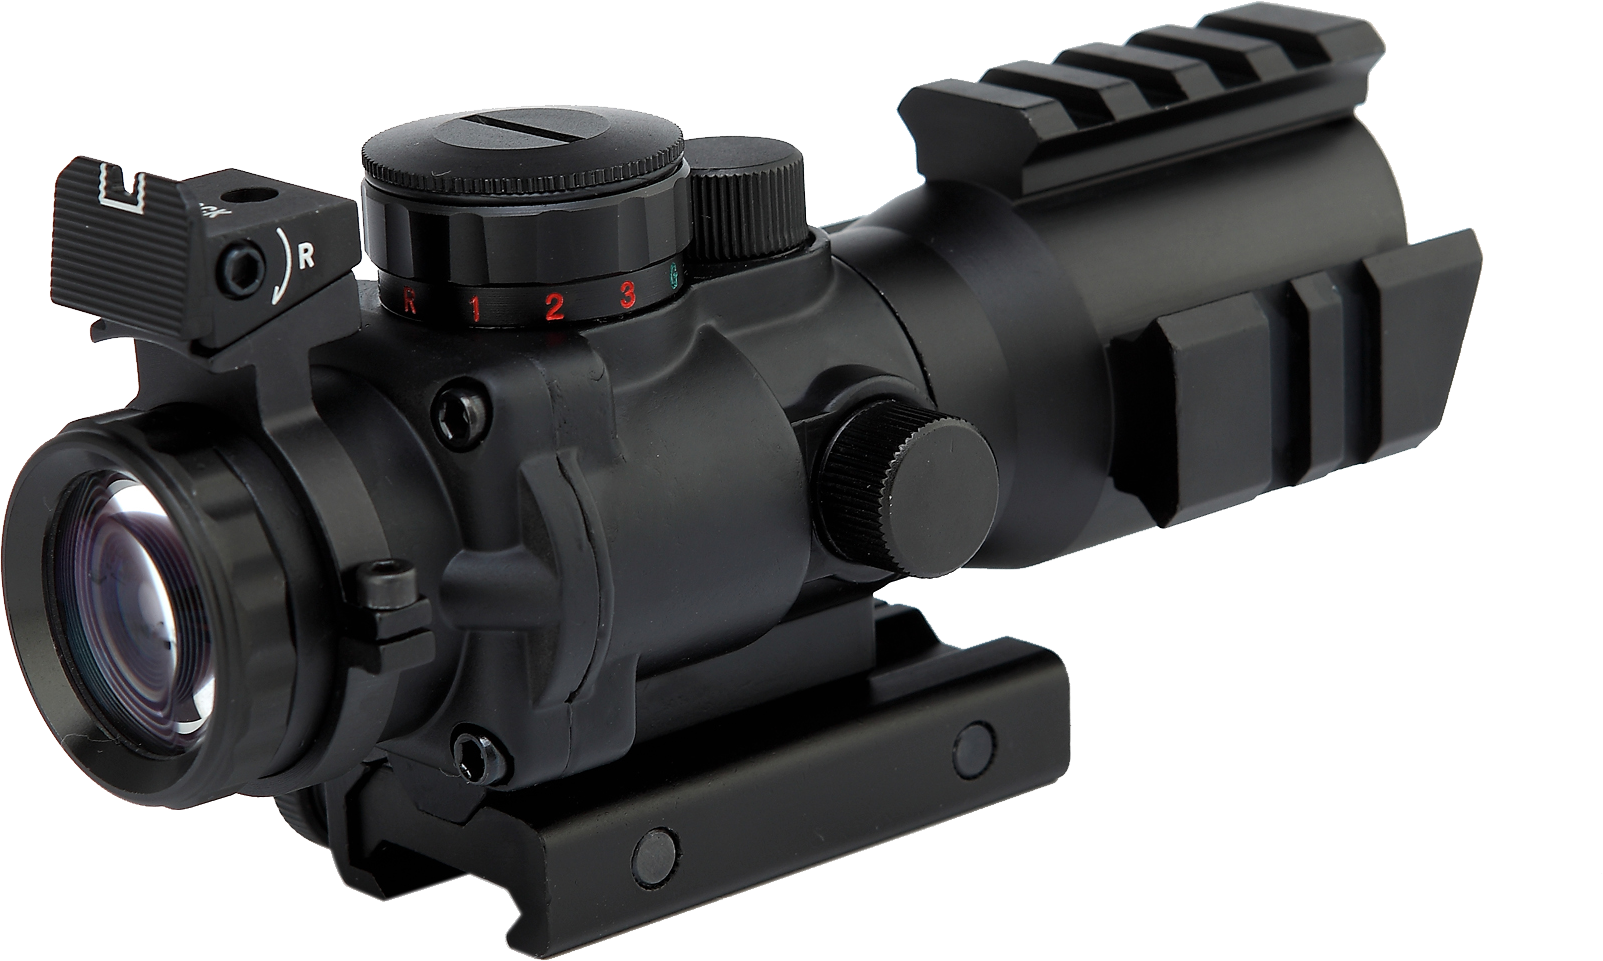 Plastic Scope Png Image Scope Image Png Images